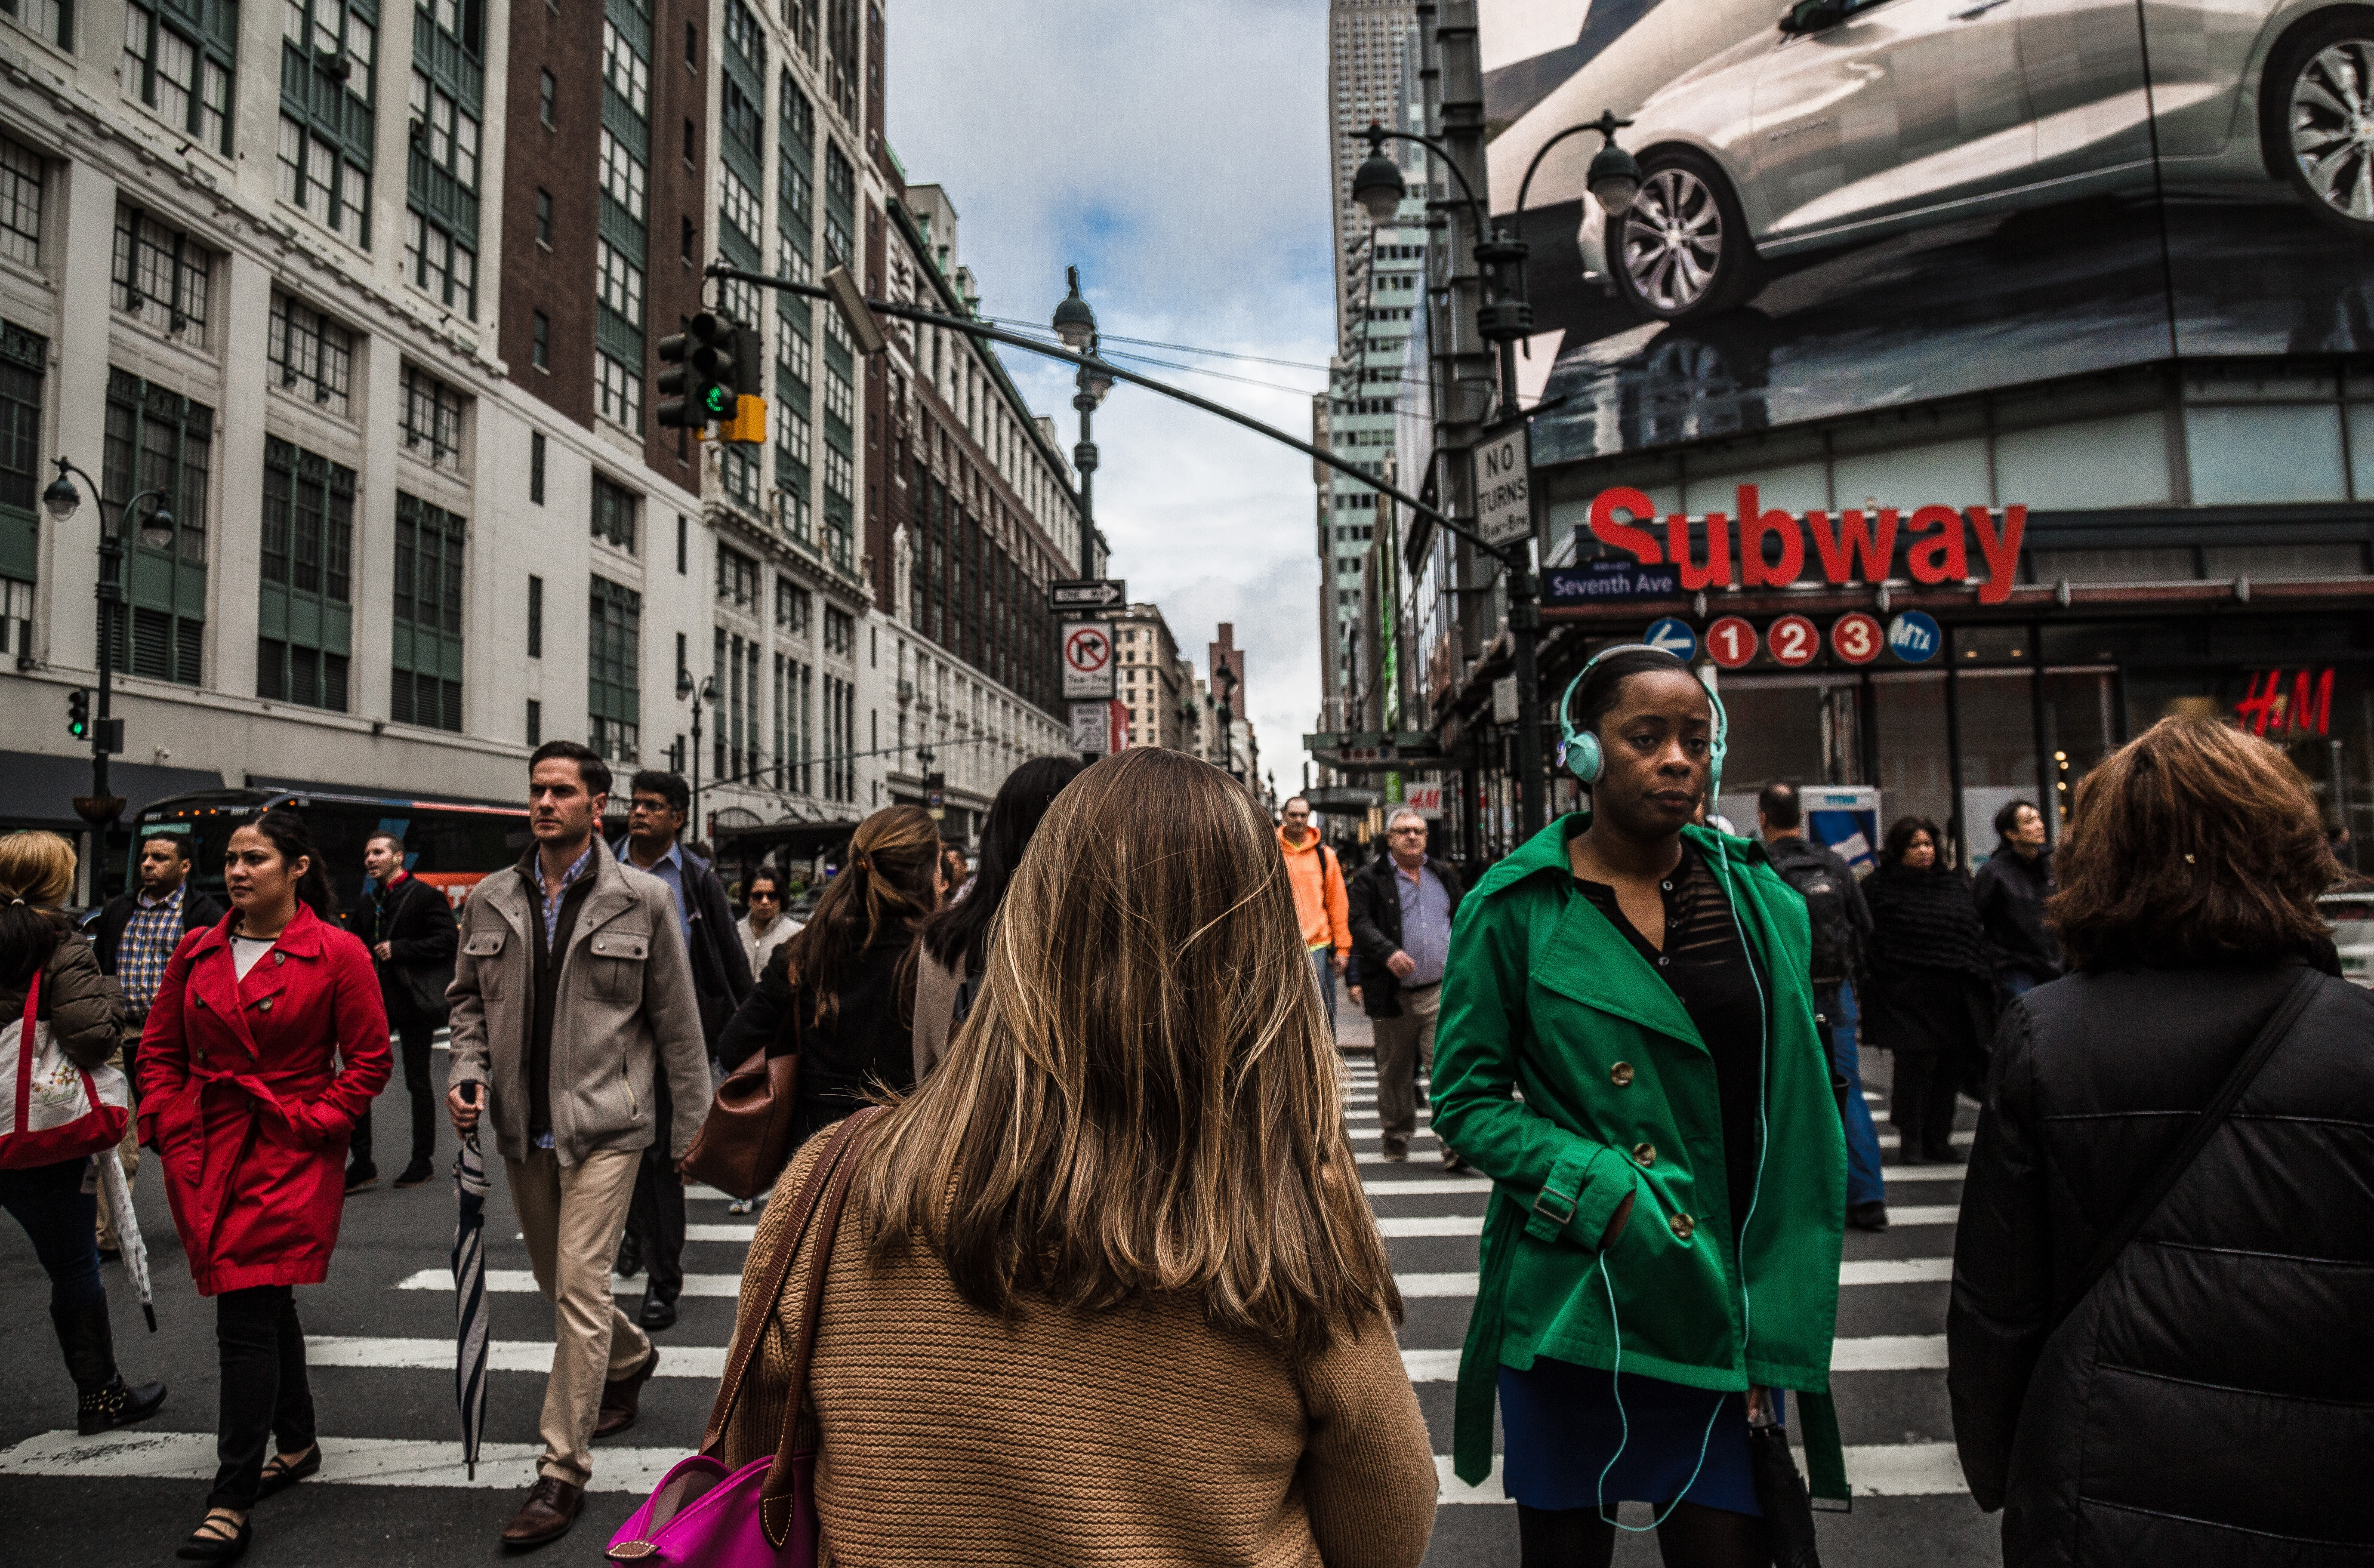 A crowd walks on a New York street among billboards, buildings, and a subway station